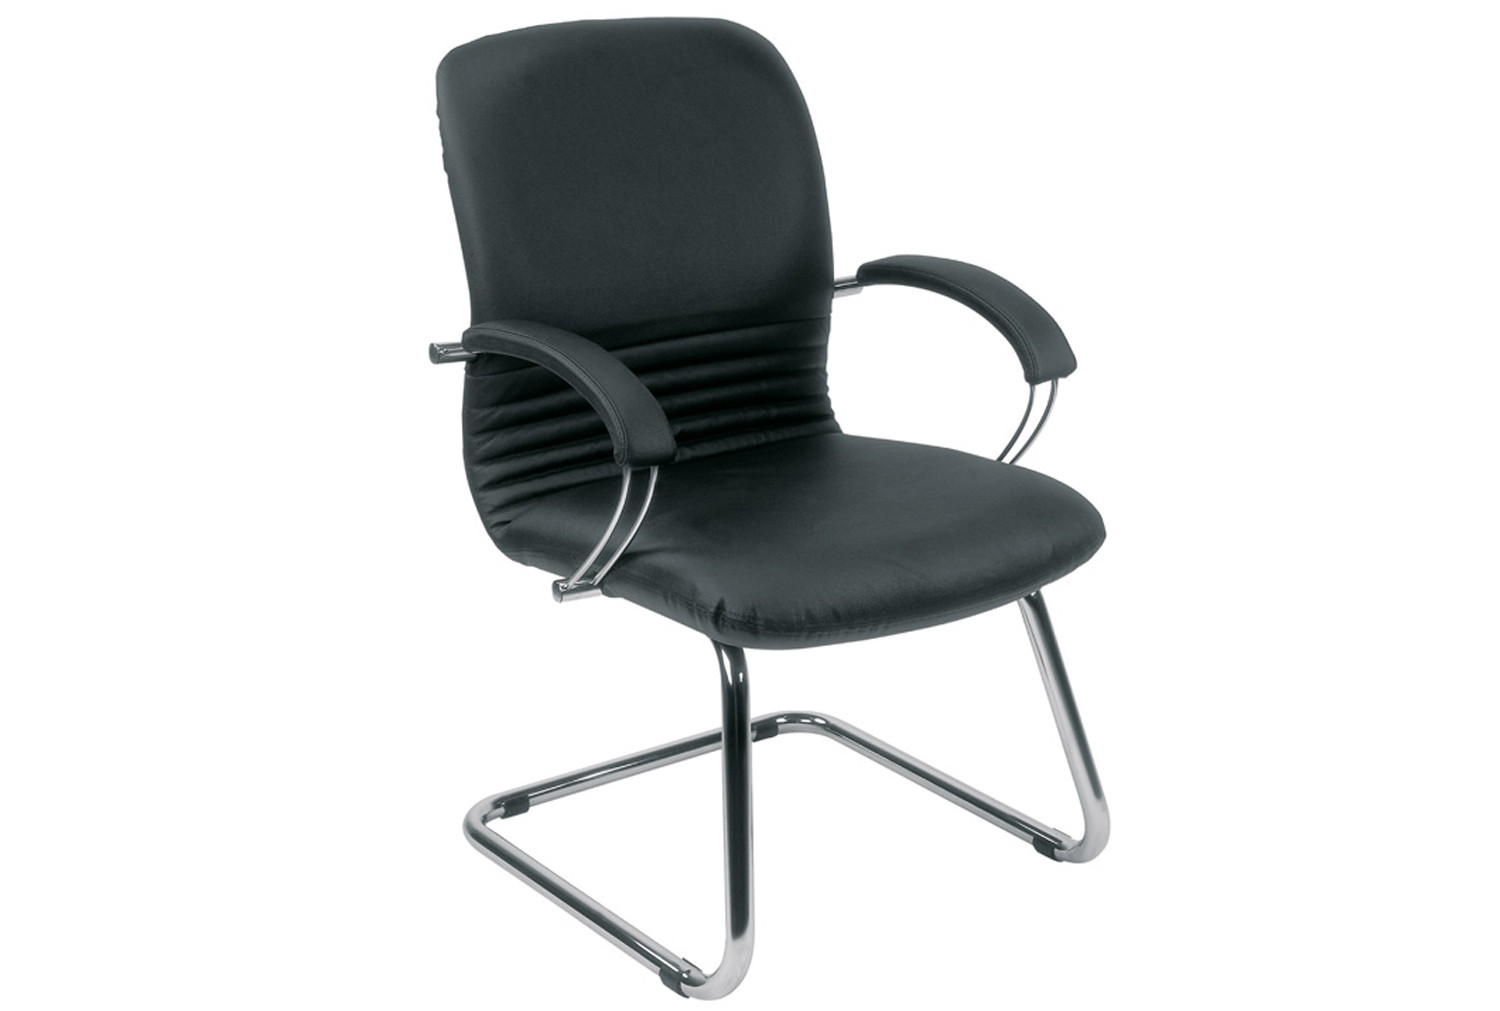 Mirage Visitor Chair